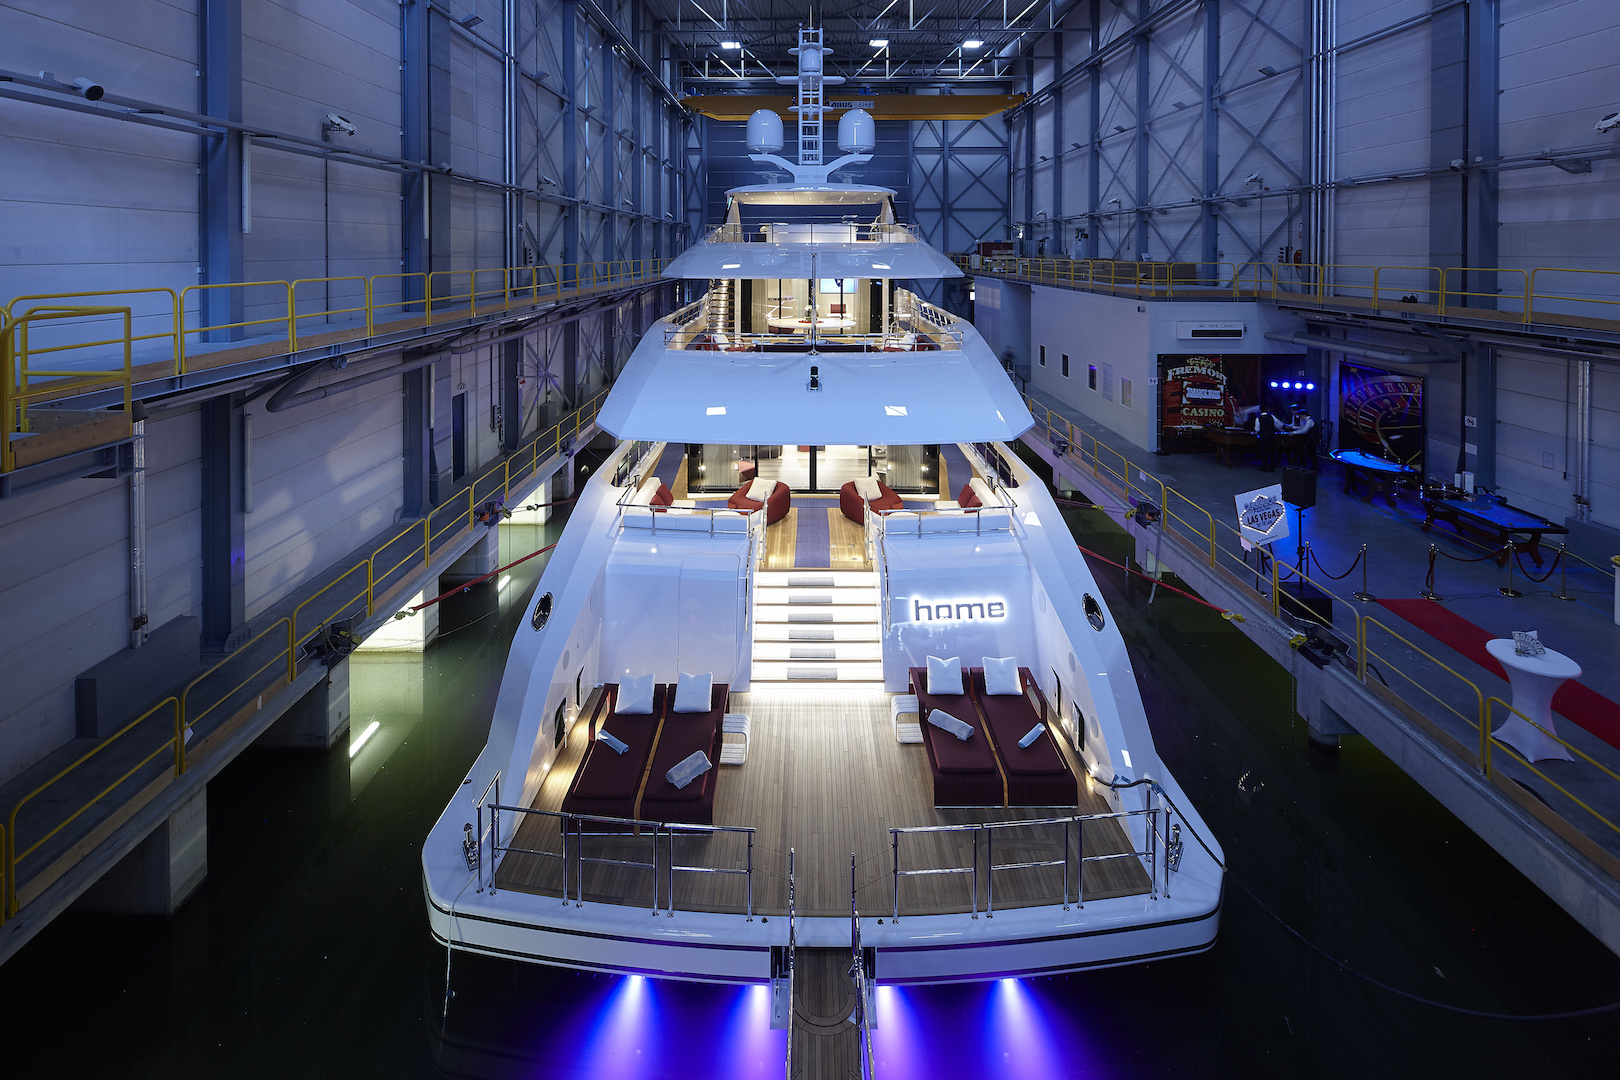 Home at Heesen during launch